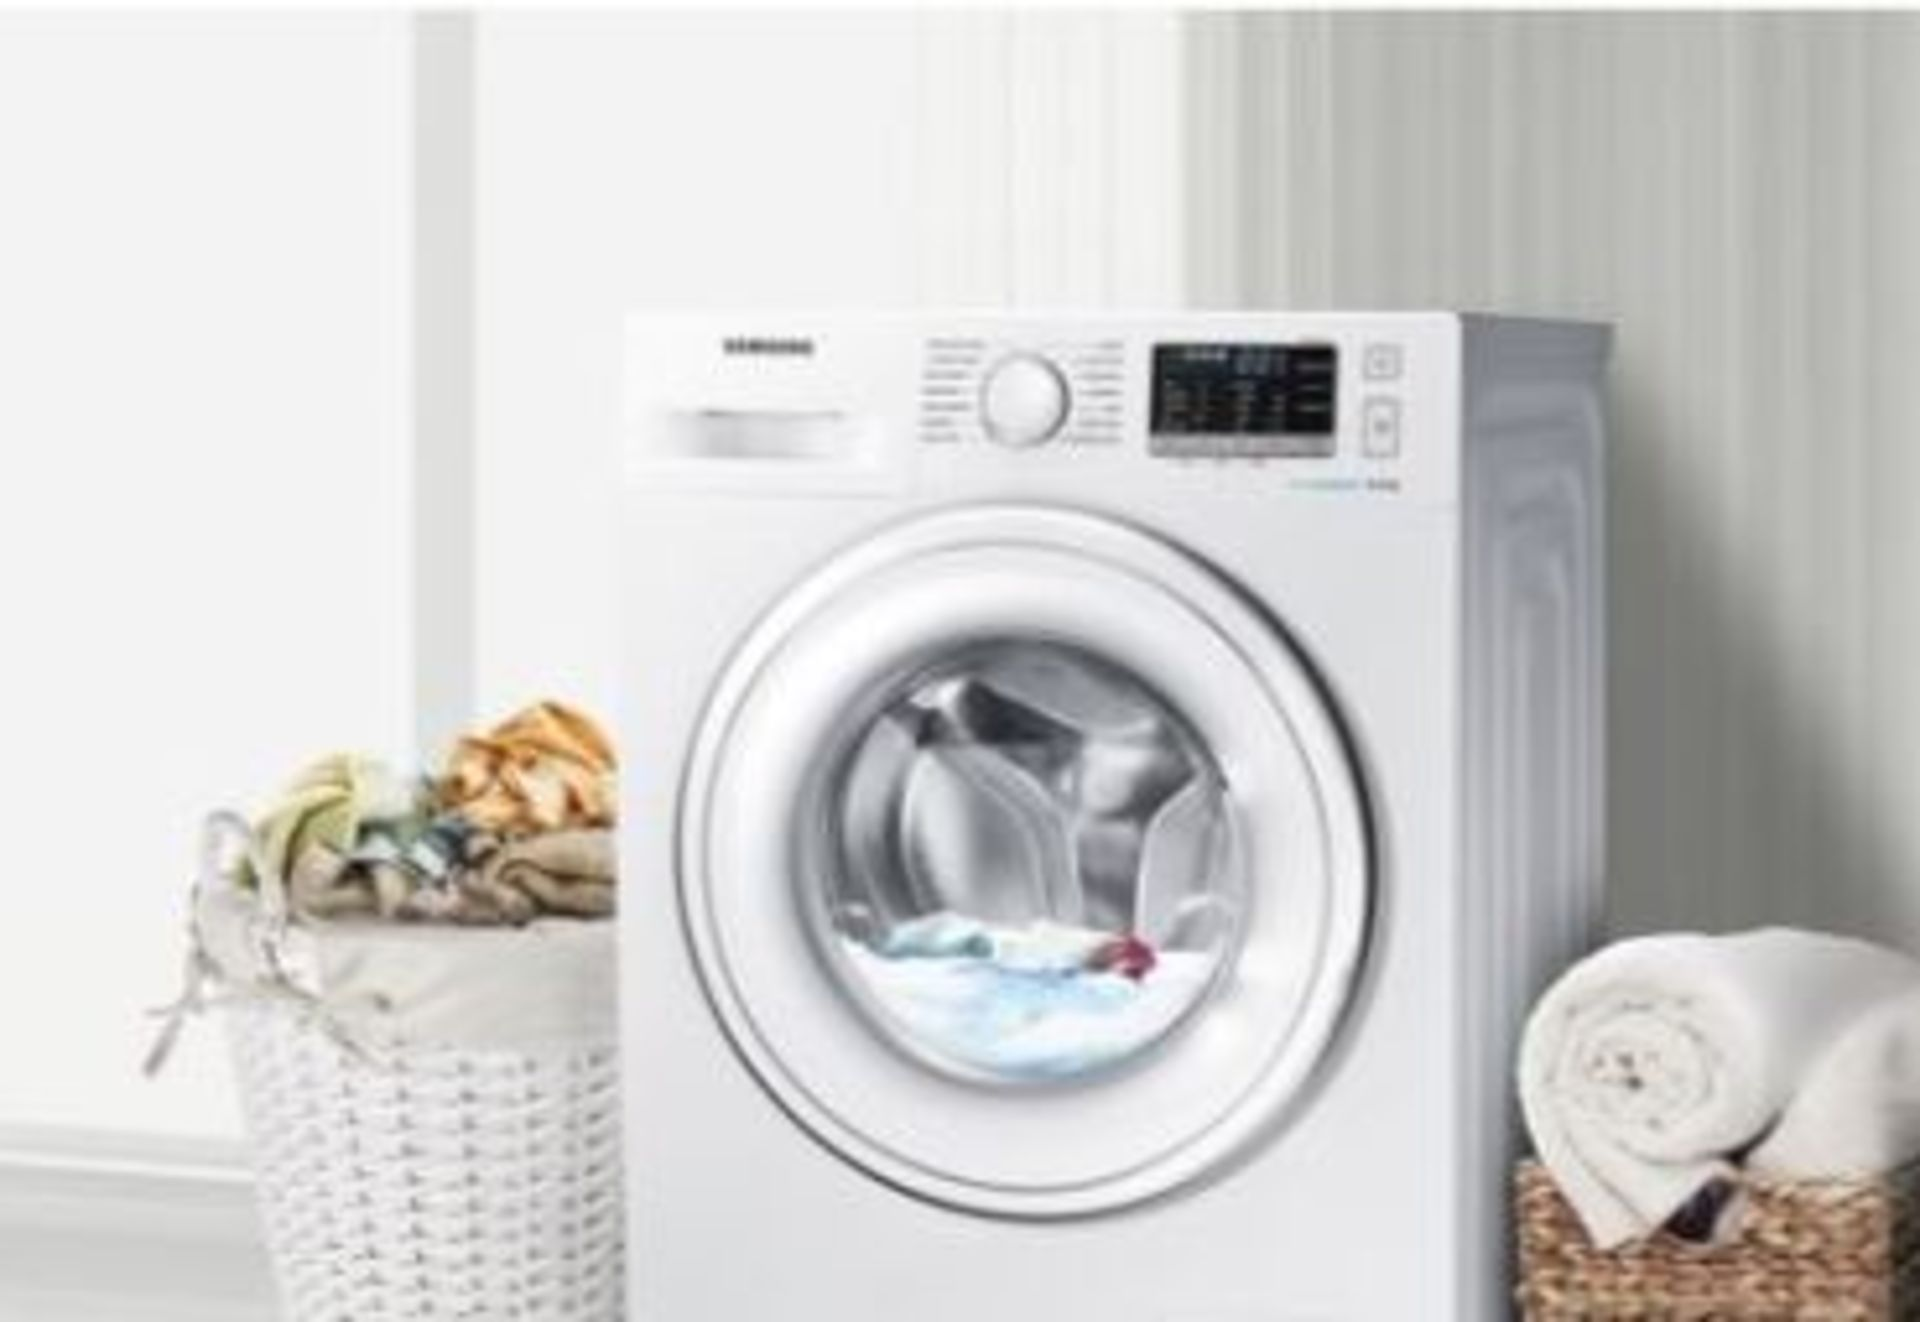 Lot 3 - Pallet of 1 Samsung Premium Washing machine. Latest selling price £339*